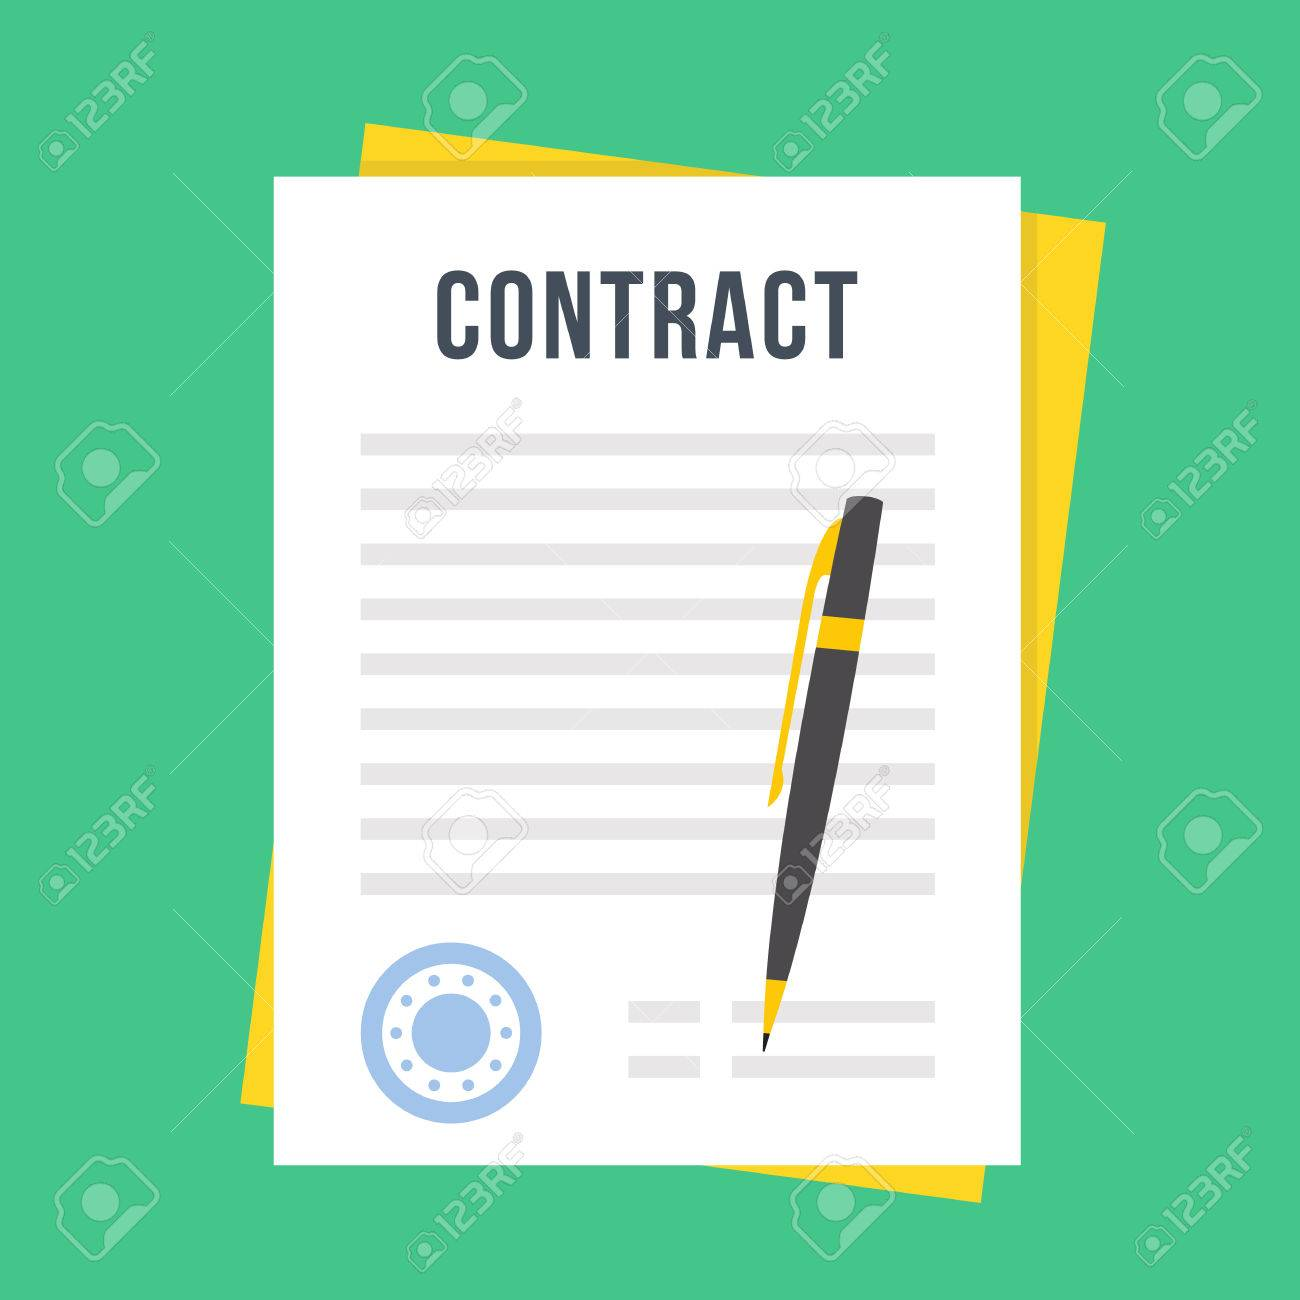 Contract Document With Rubber Stamp And Pen. Sign Contract Concept. Flat  Style Design Vector